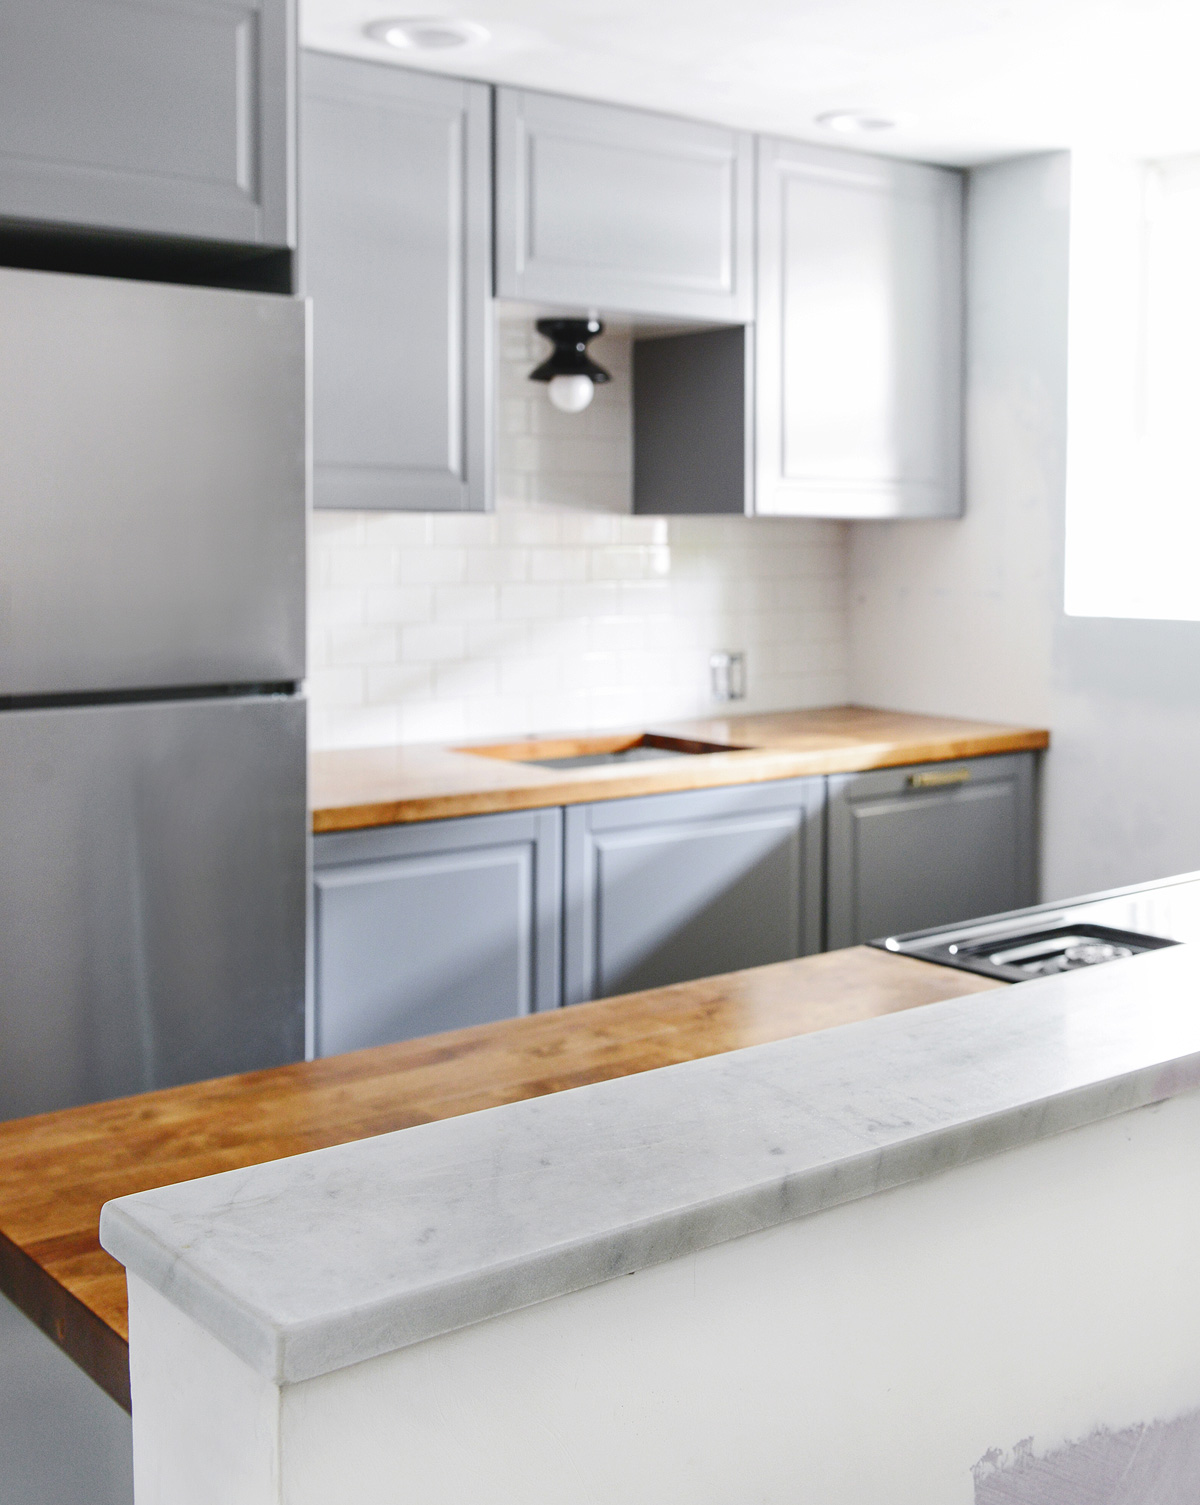 How We Polished A Mini Marble Countertop for the Garden Kitchen ...